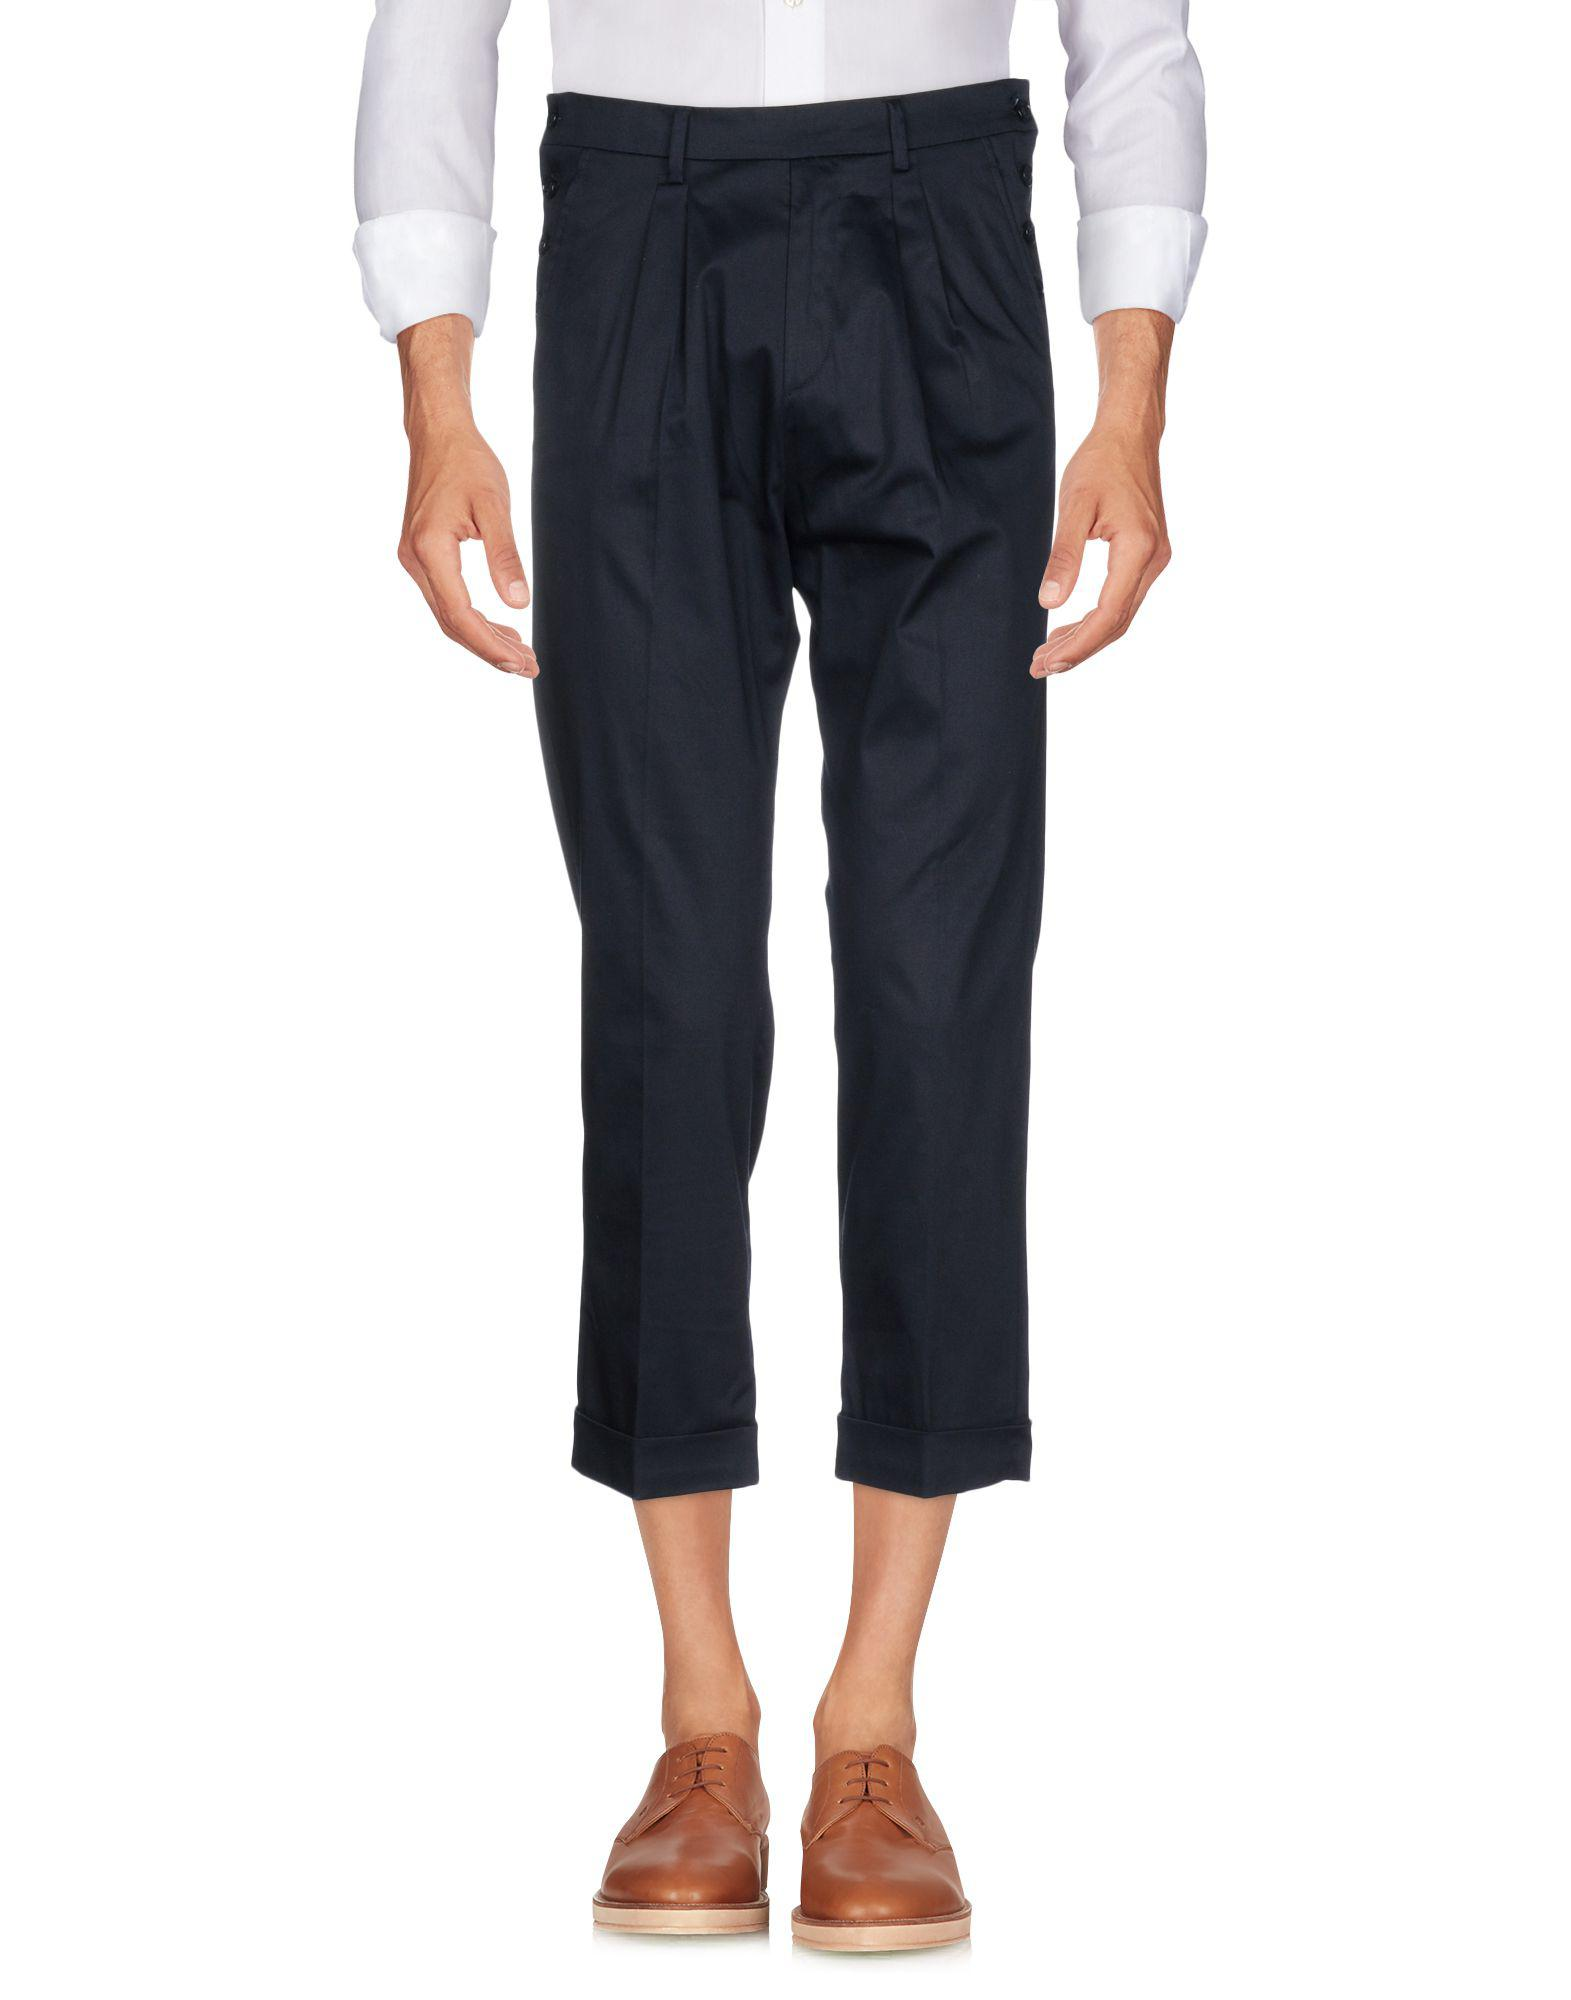 Alessandro Dell'acqua Cotton Casual Pants in Dark Blue (Blue) for Men